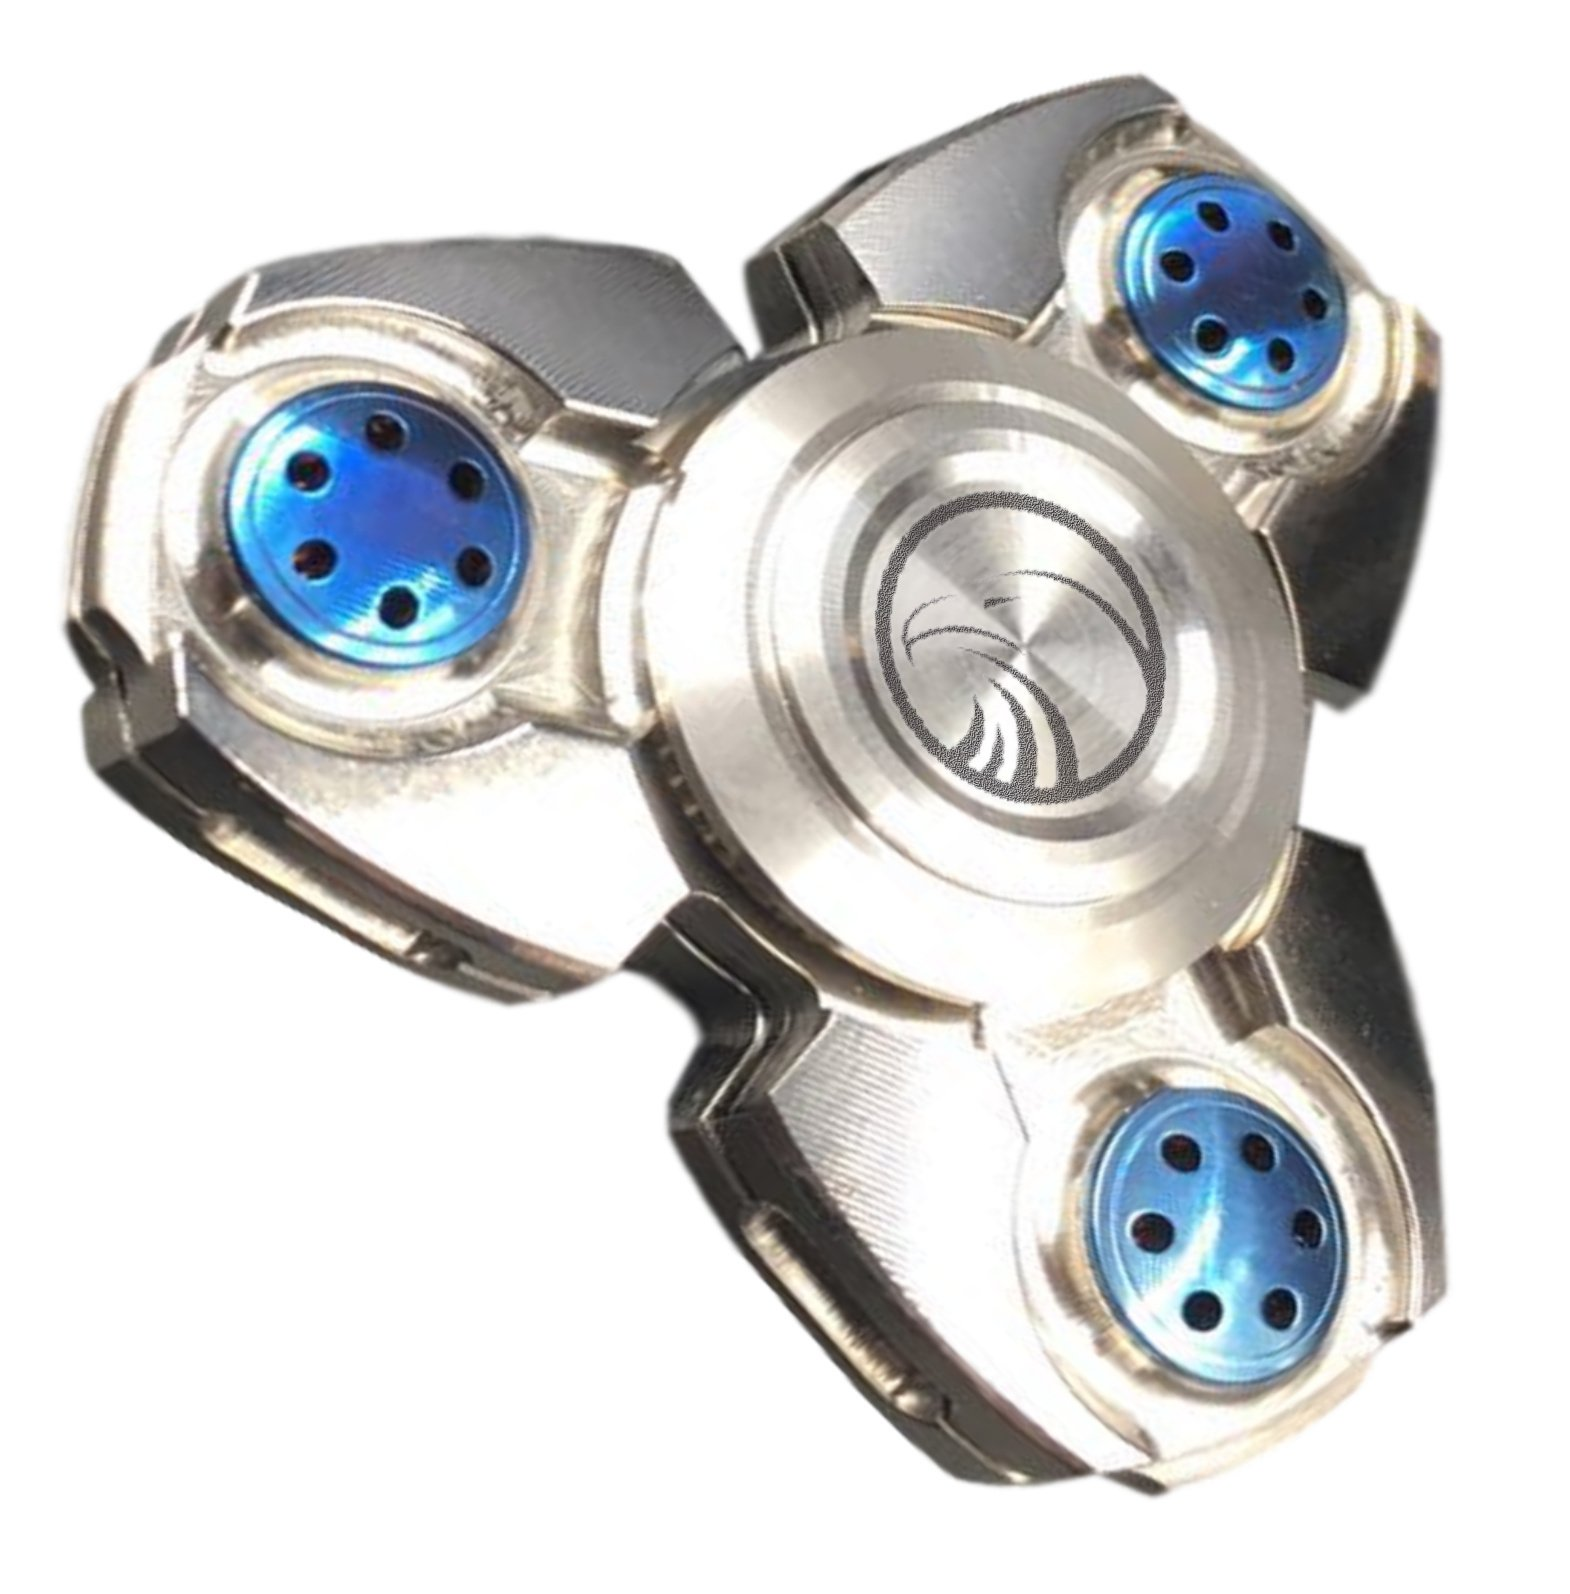 Valtcan Titanium Fidget Spinner Gyroscope by Valtcan (Image #1)